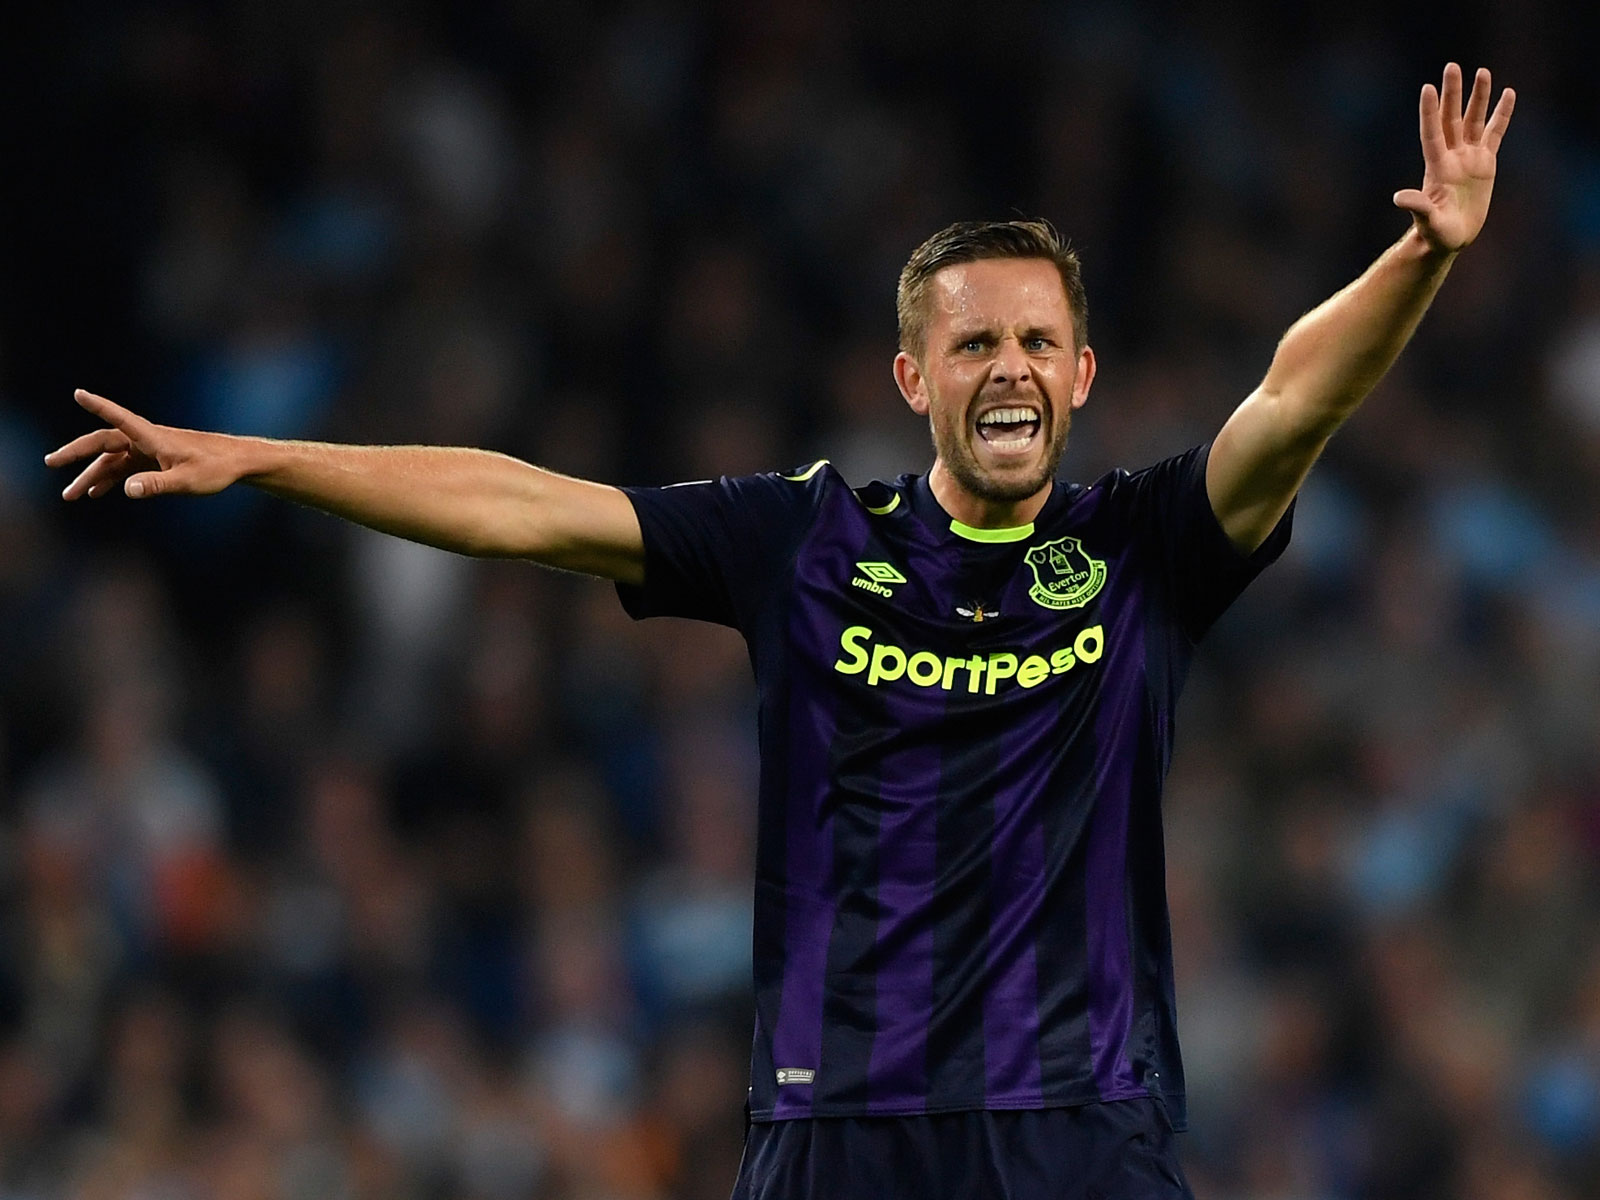 Gylfi Sigurdsson left Swansea City for Everton